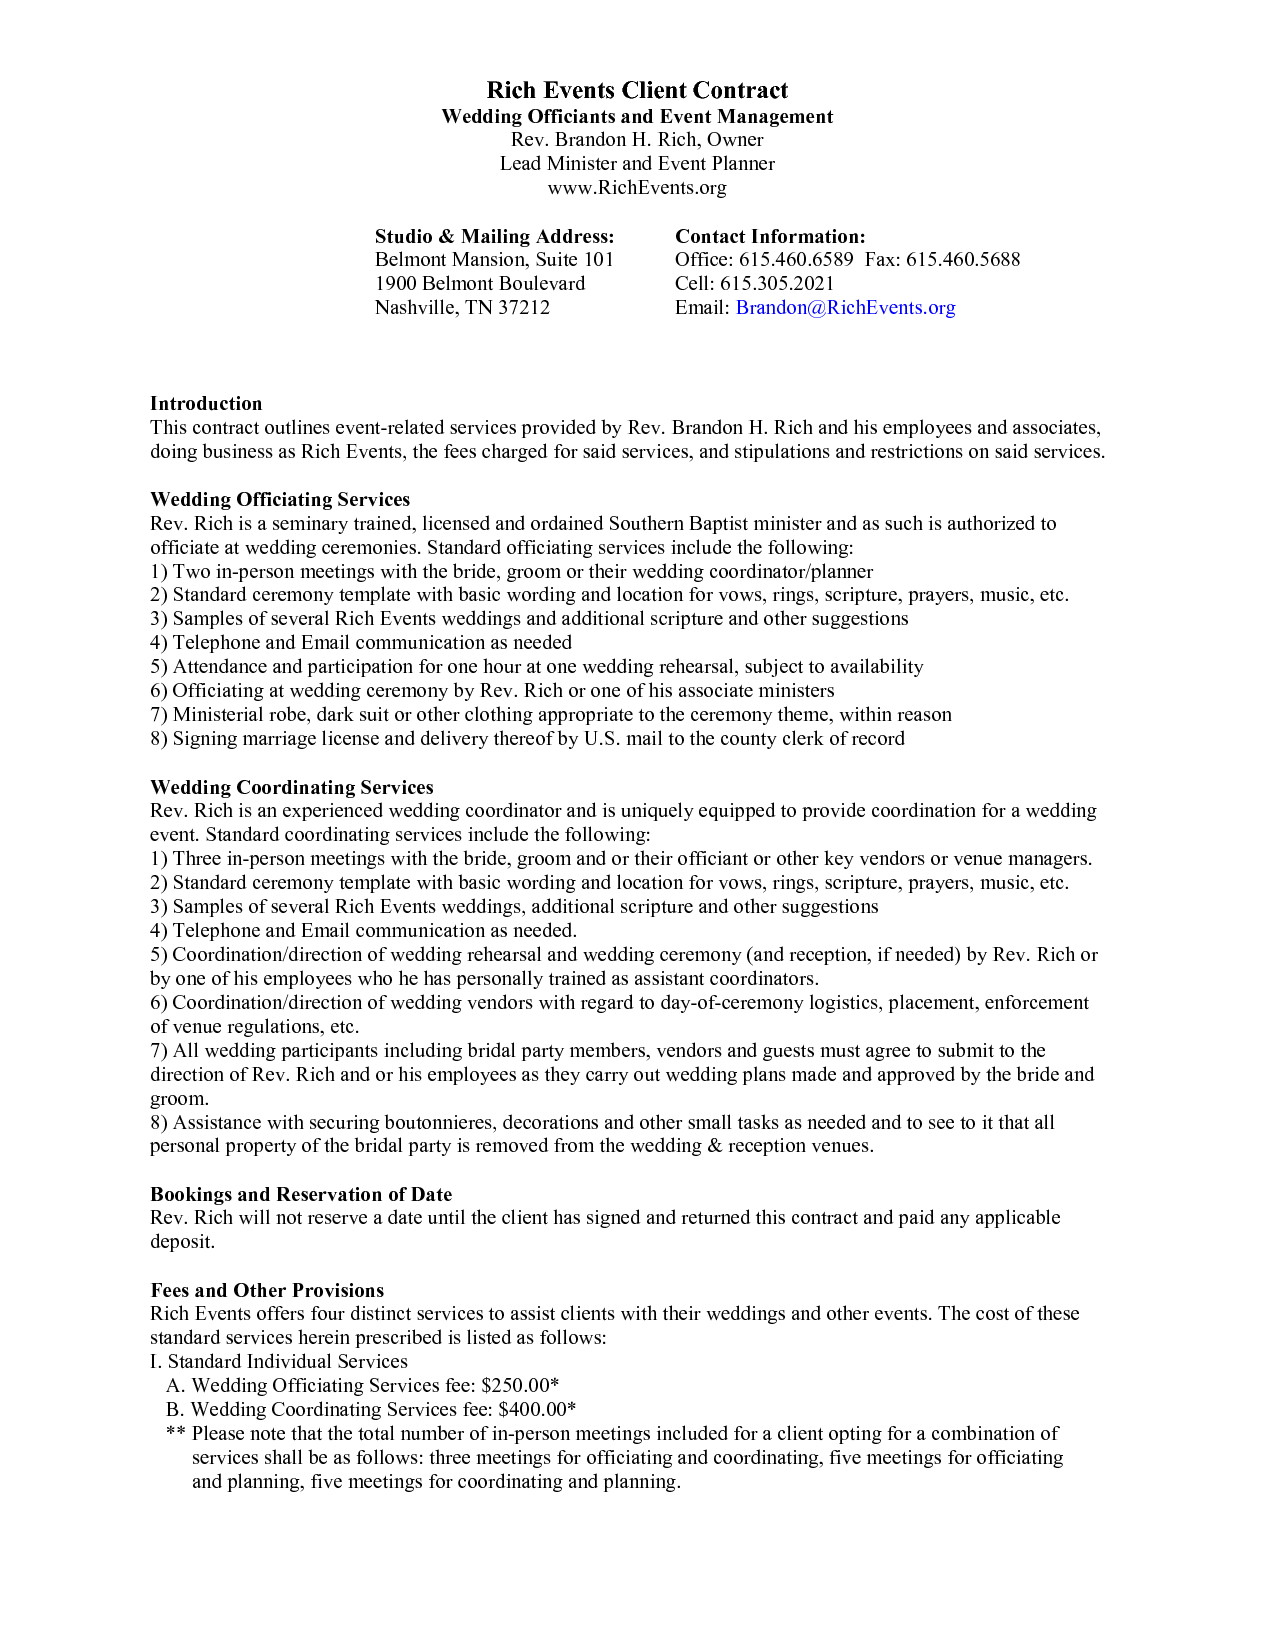 Events planning business plan sample professional ghostwriter website for masters